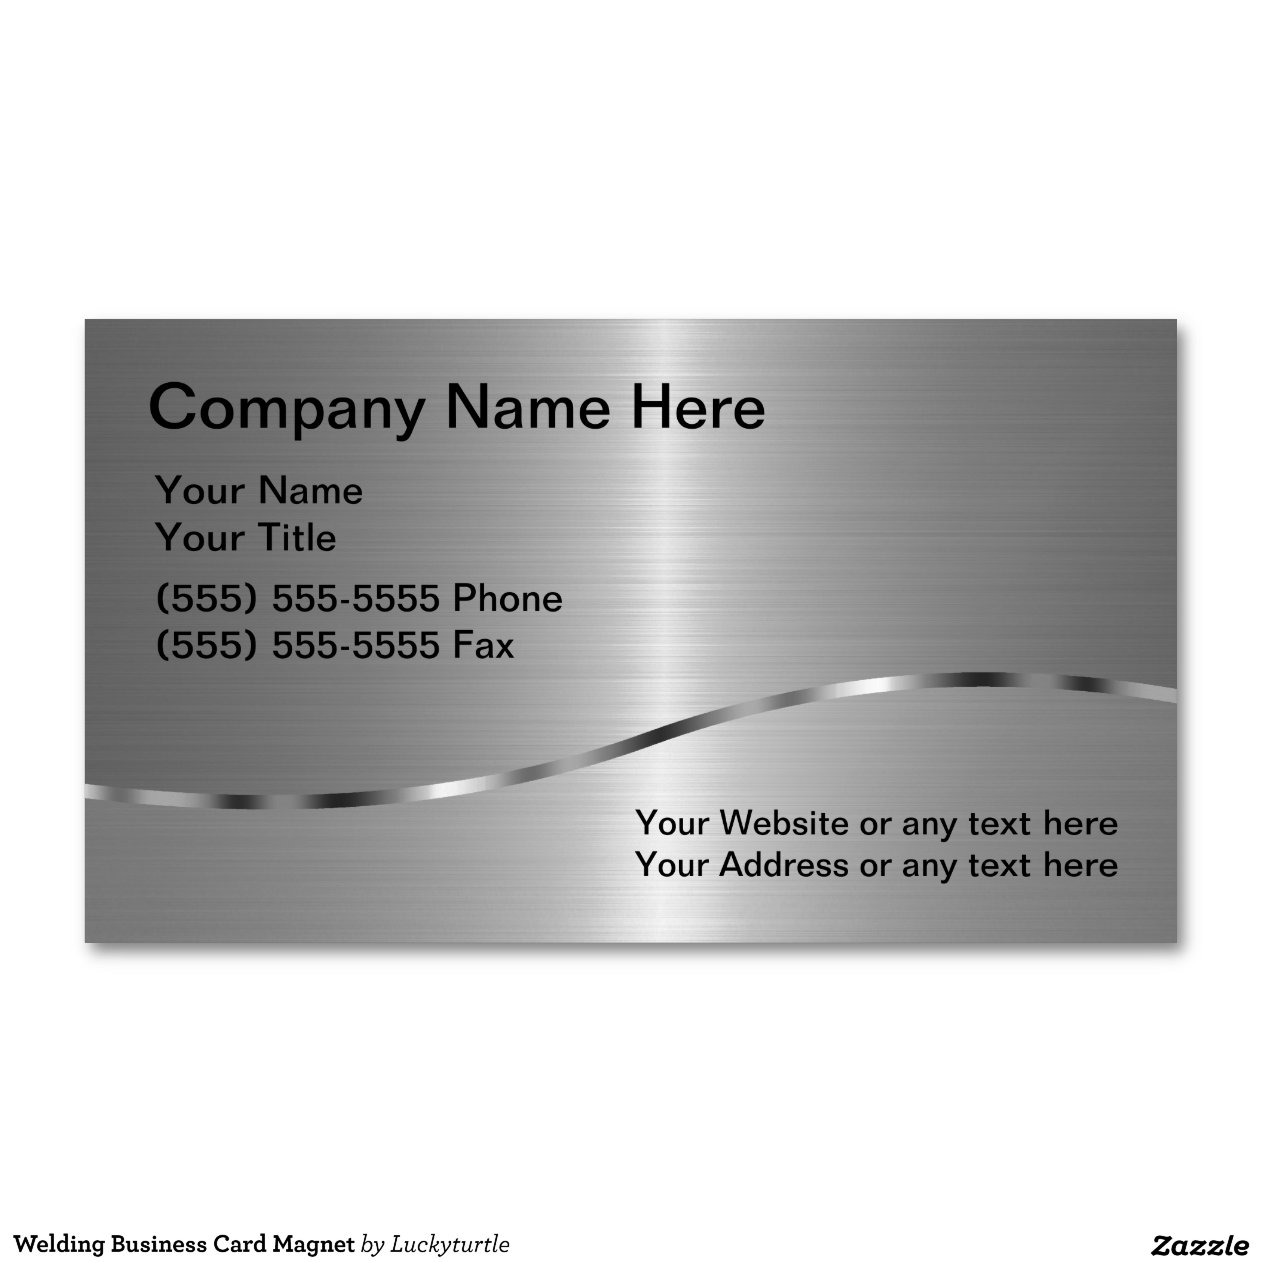 Welding Business Card Magnet Magnetic Business Cards